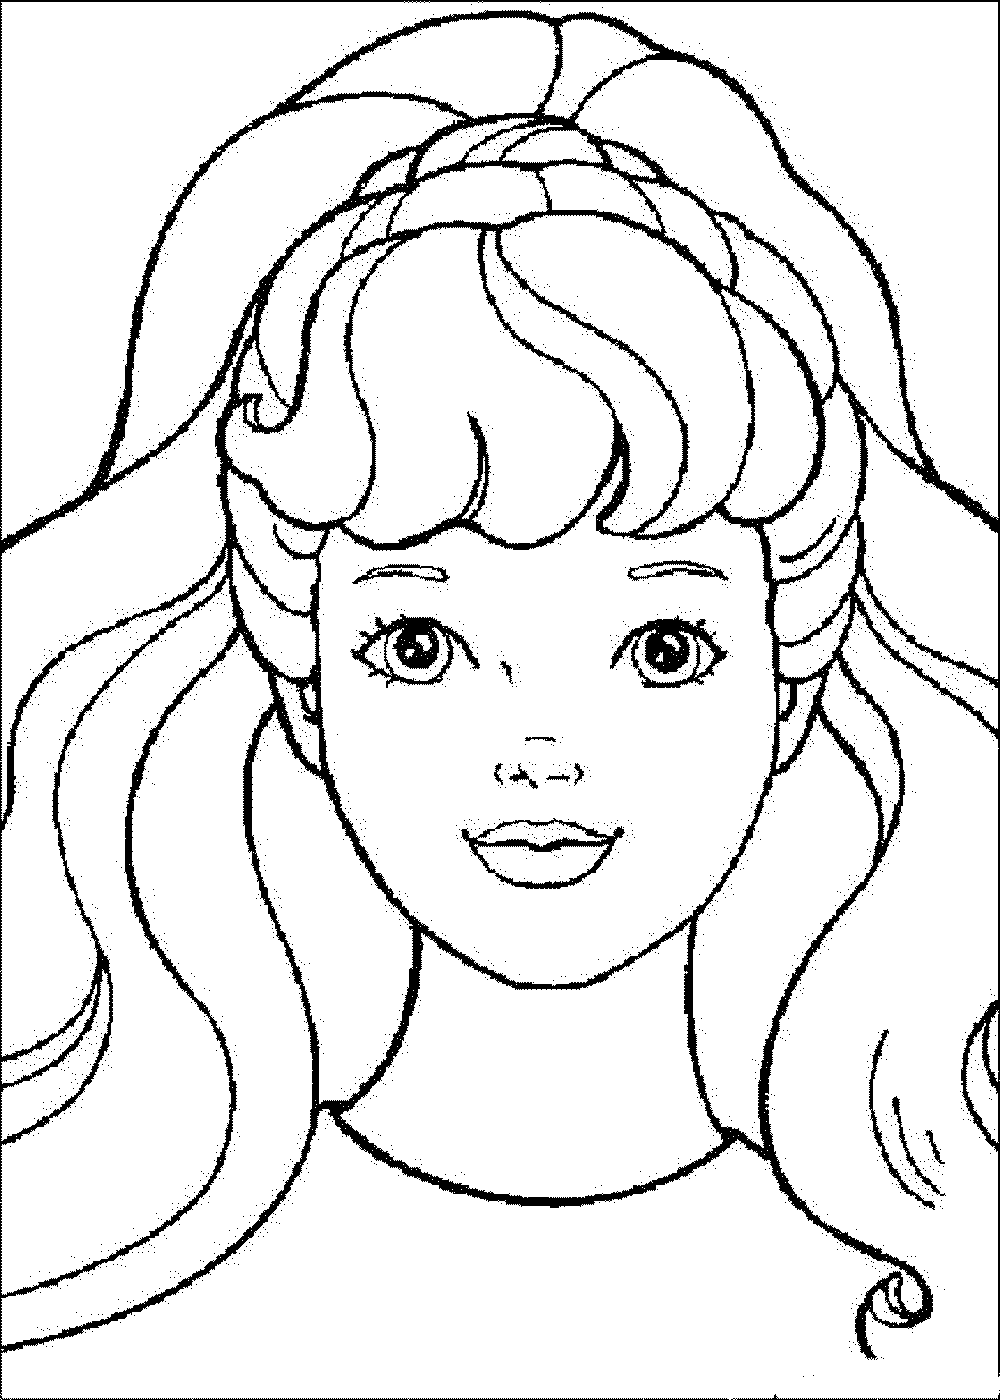 BARBIE MARIPOSA coloring pages - 20 online Mattel dolls printables ... | 1400x1000